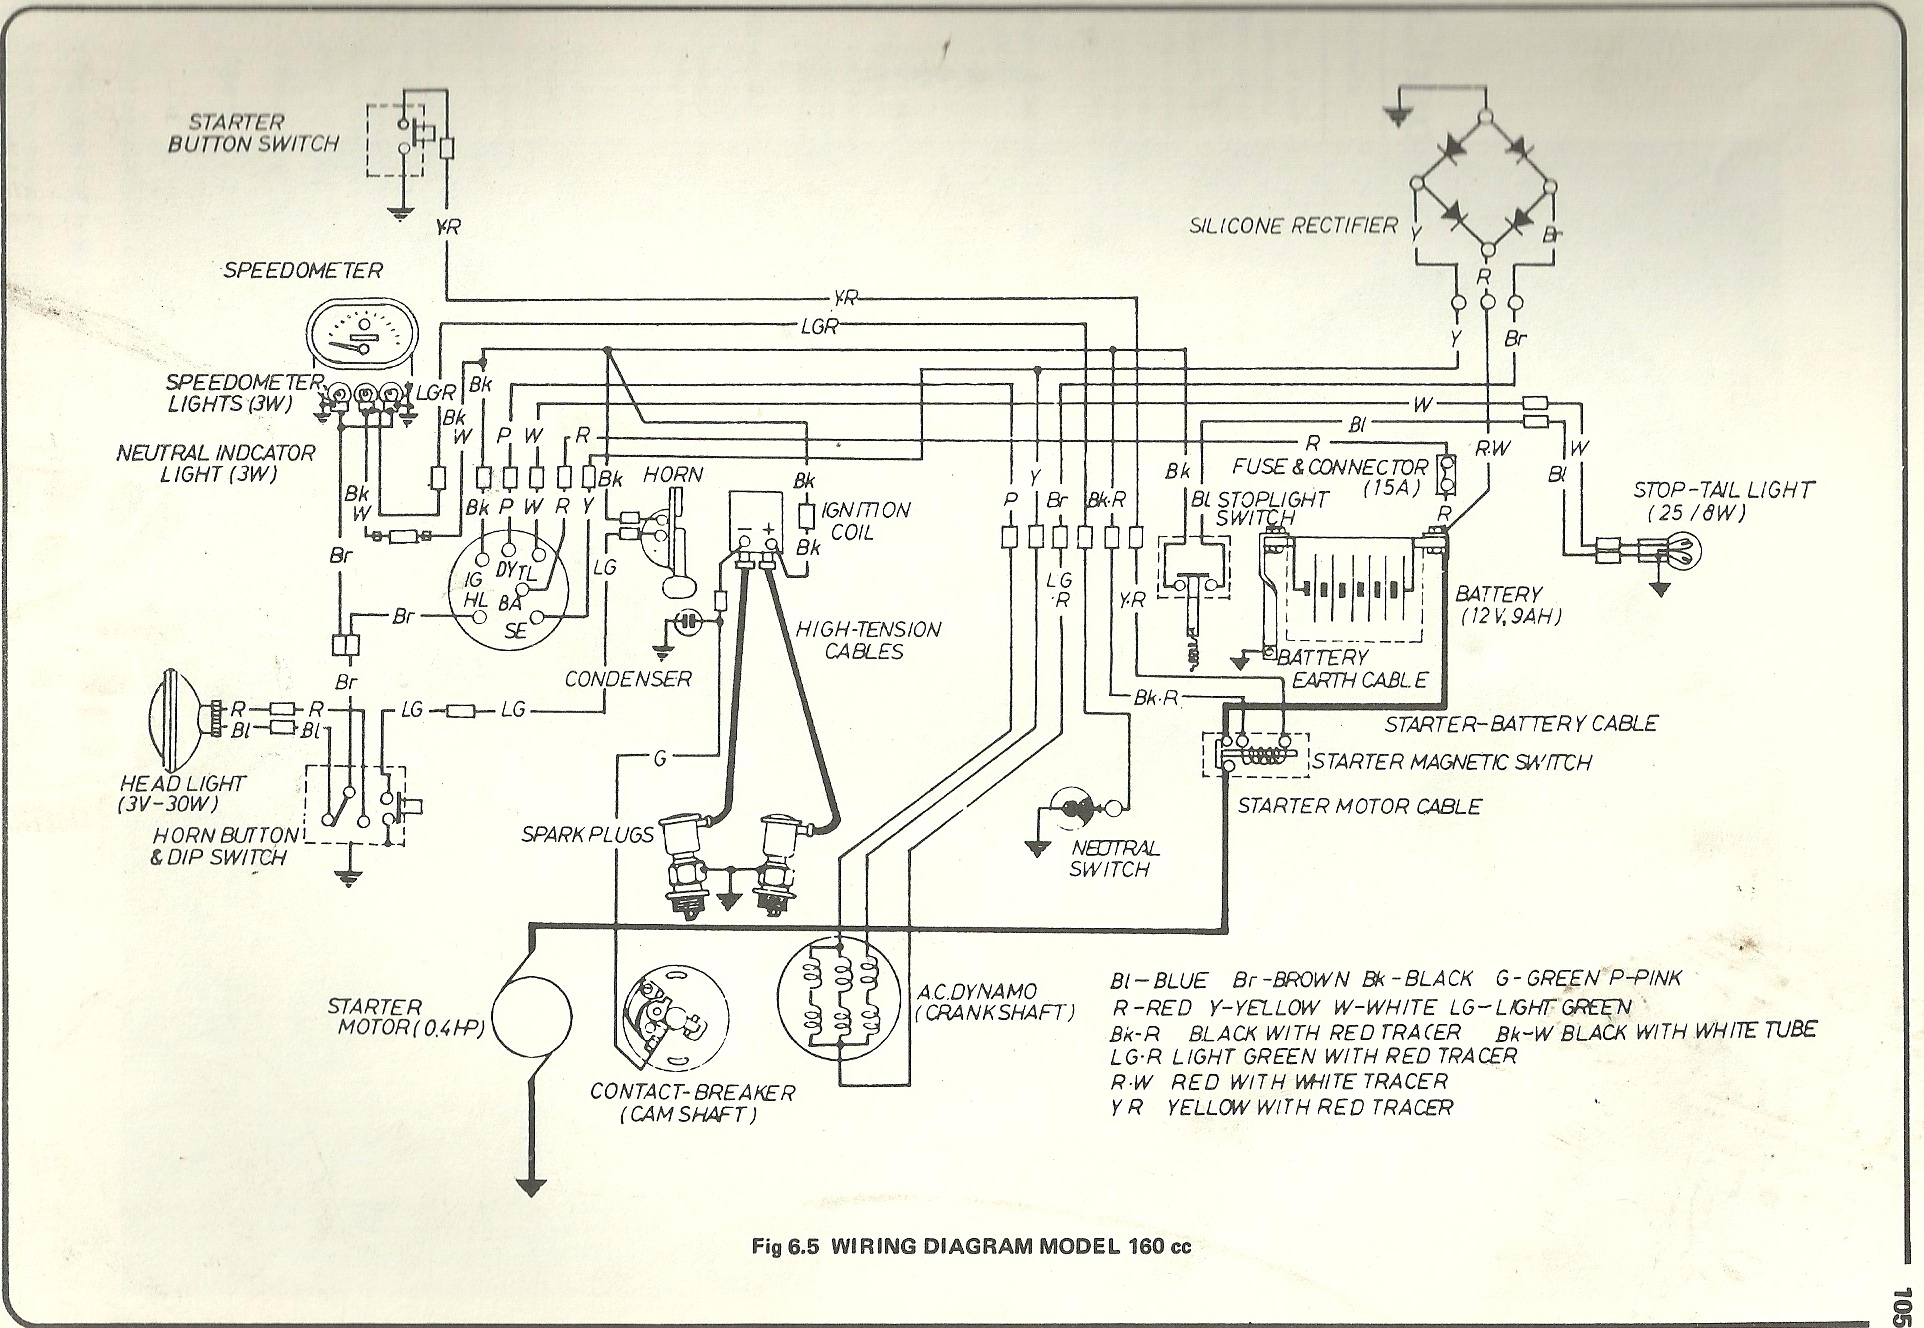 Atv Wiring Diagrams Likewise Miller Electric Furnace Wiring Diagram